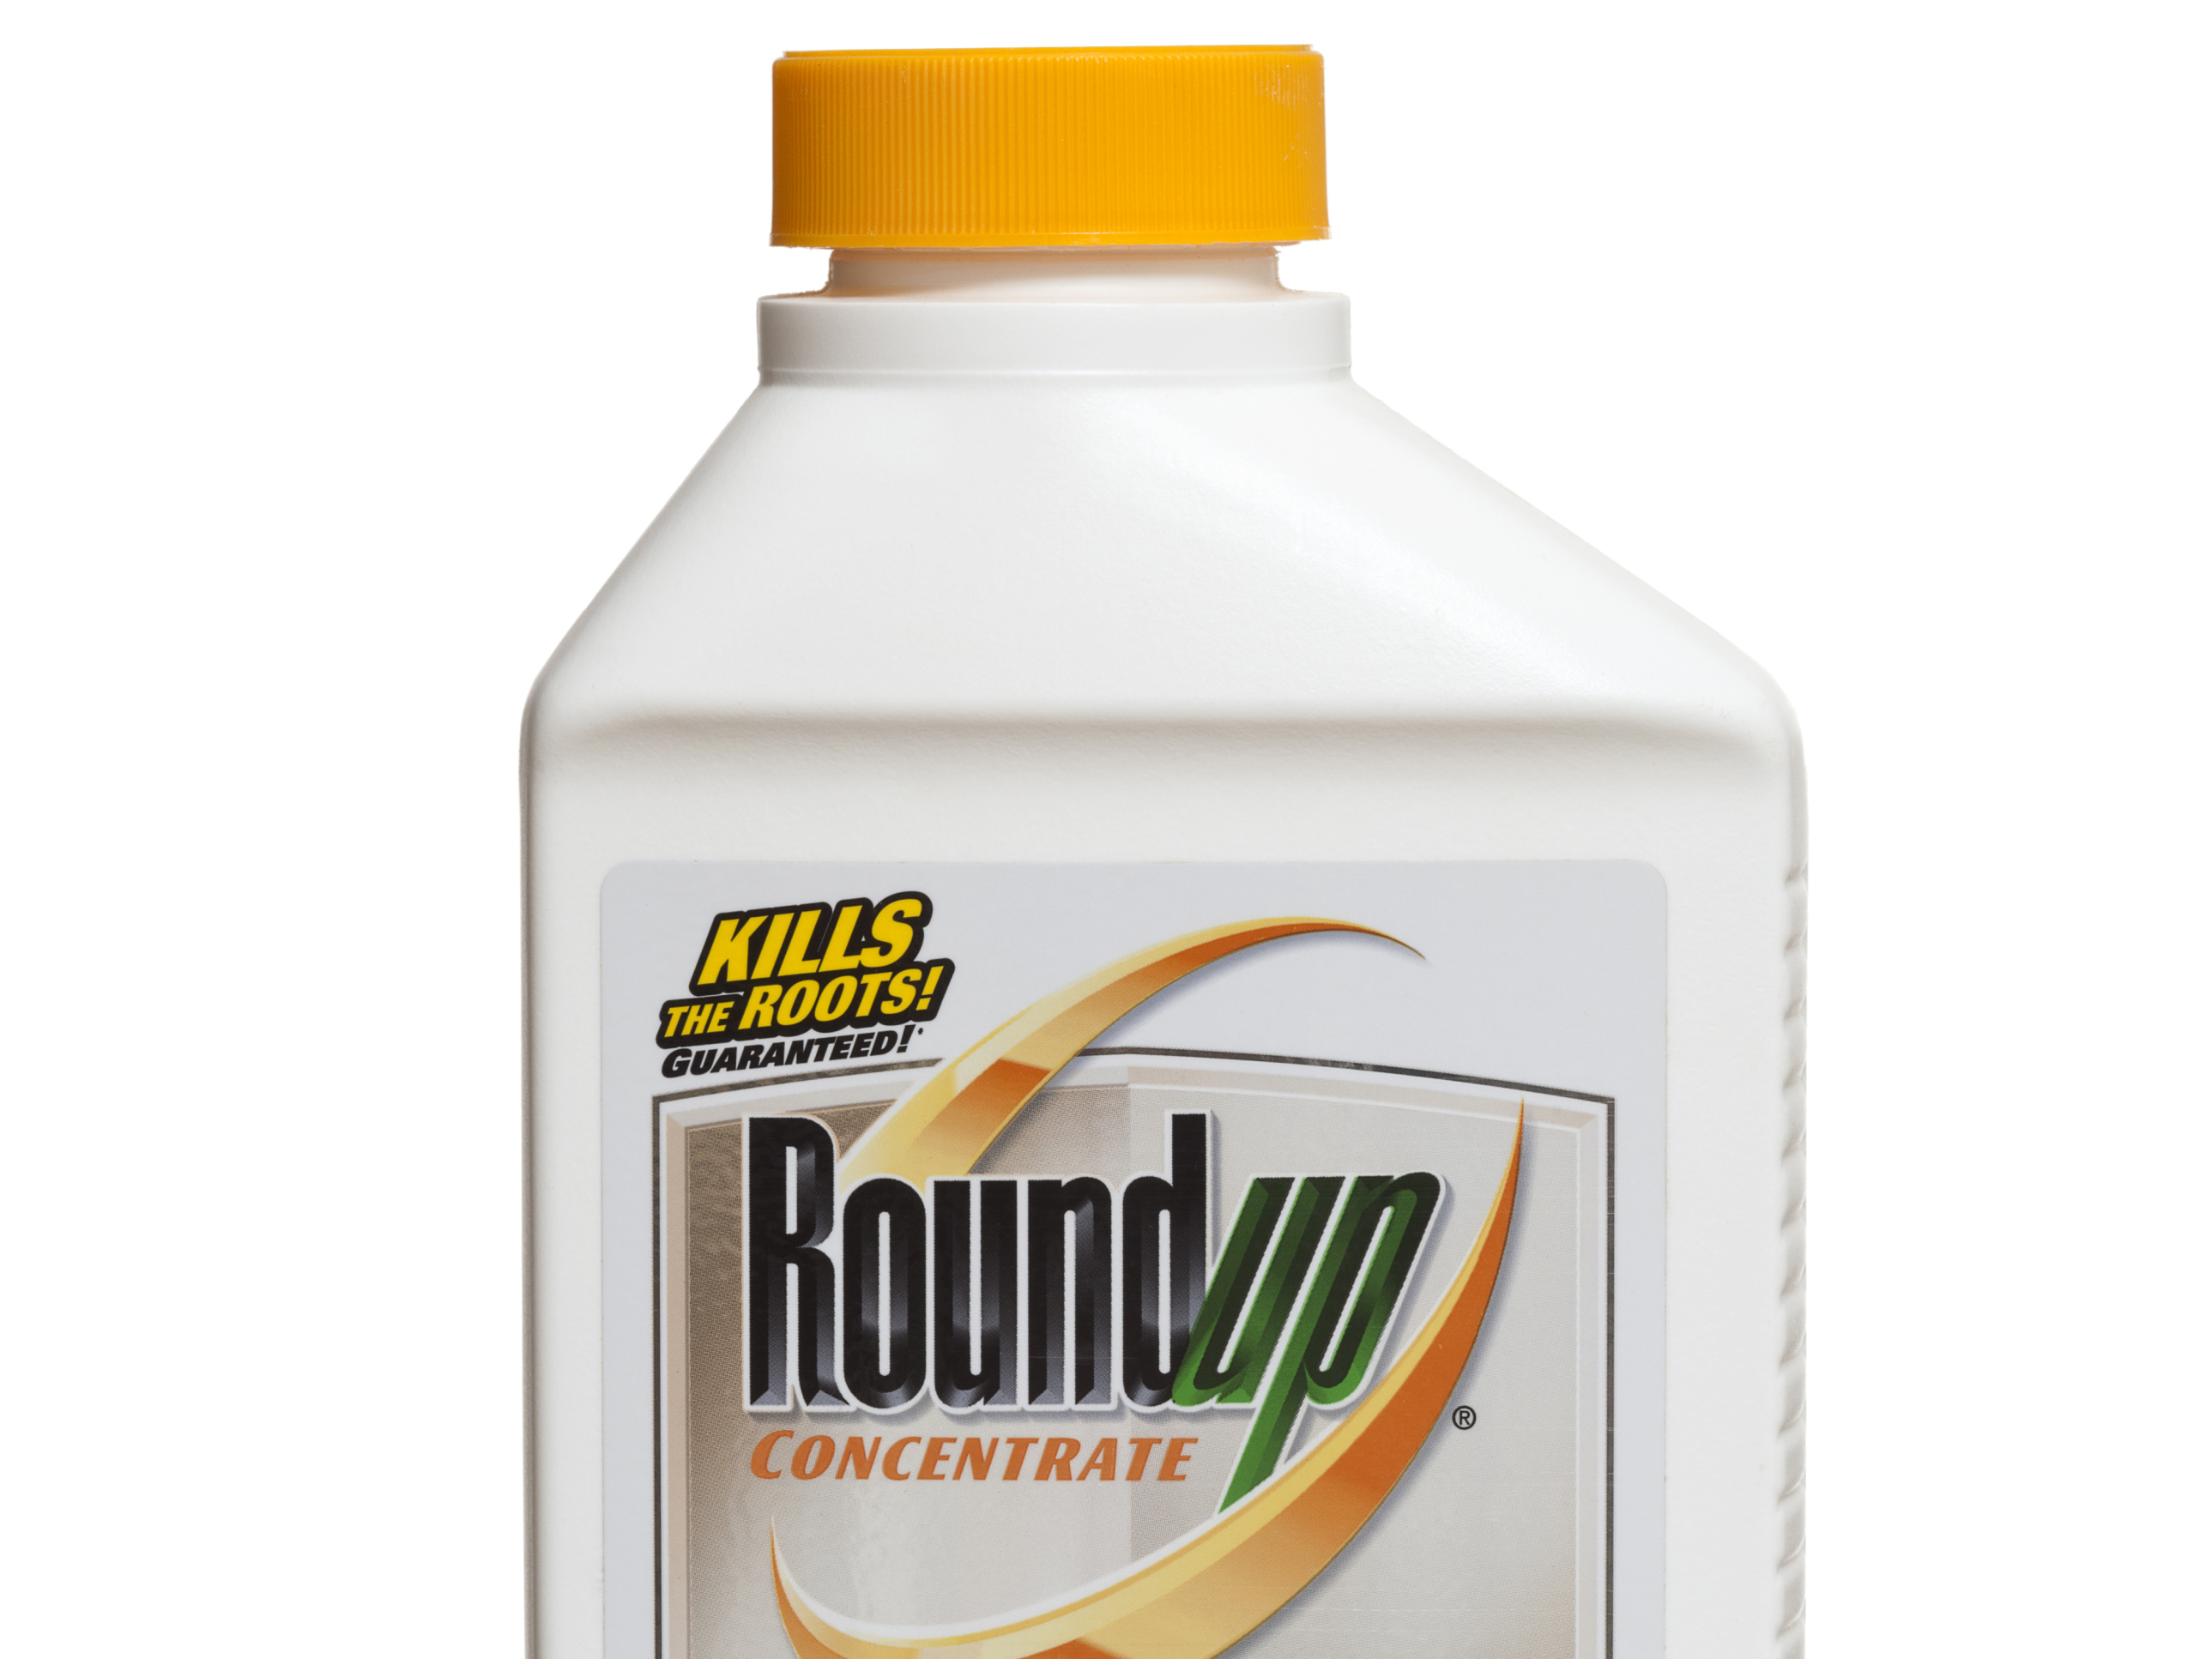 Glyphosate linked to birth defects in pigs